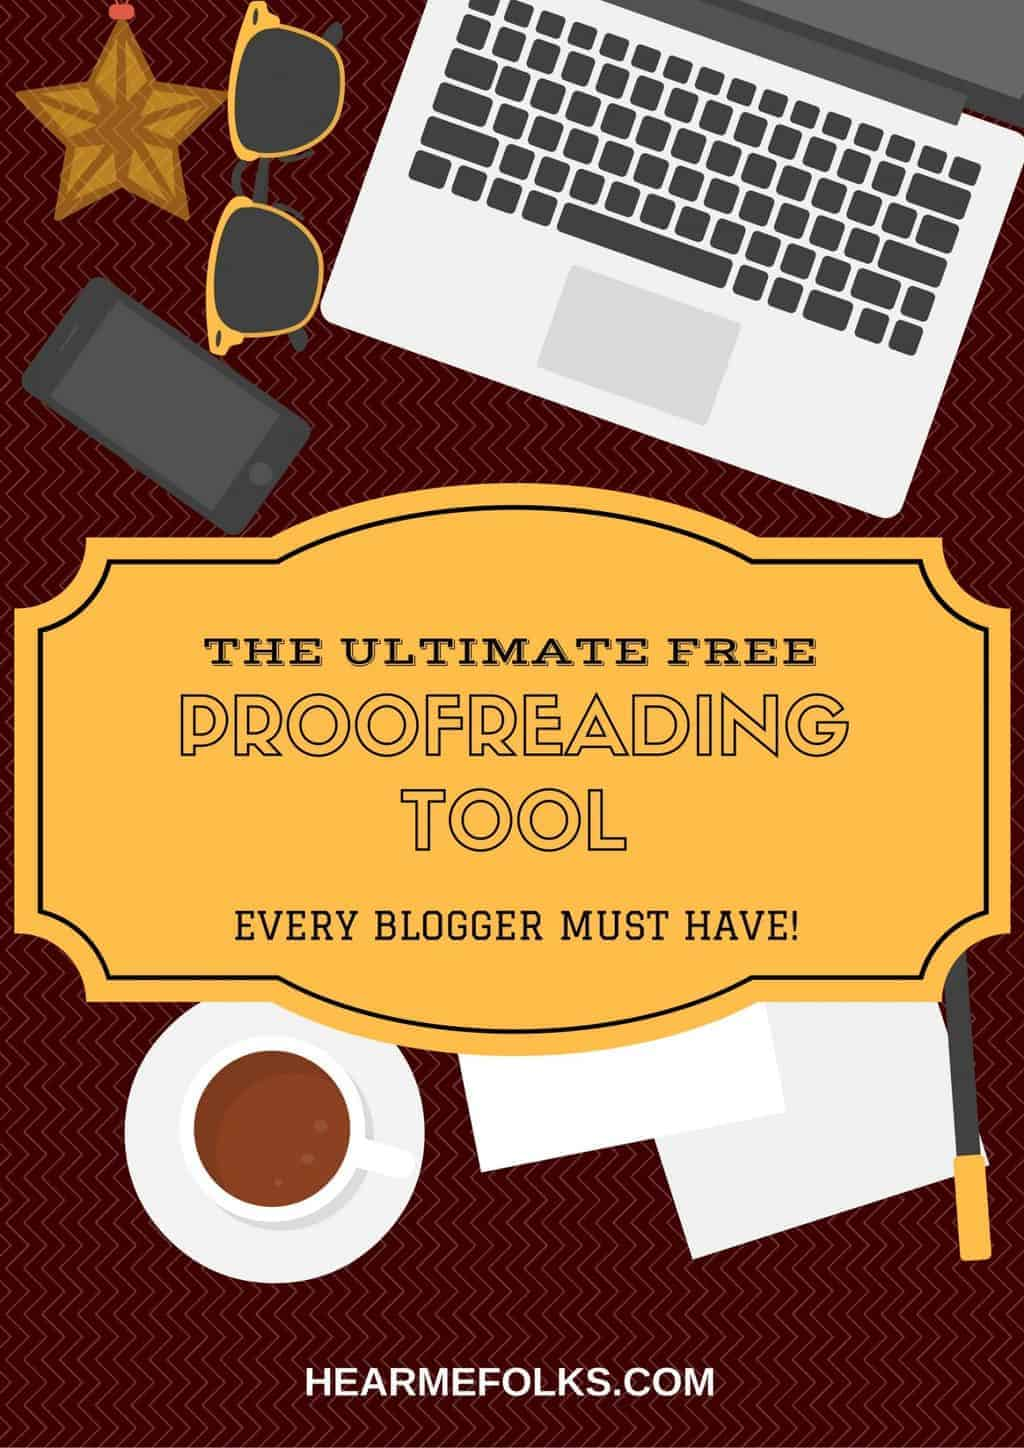 Online proofreading tool or